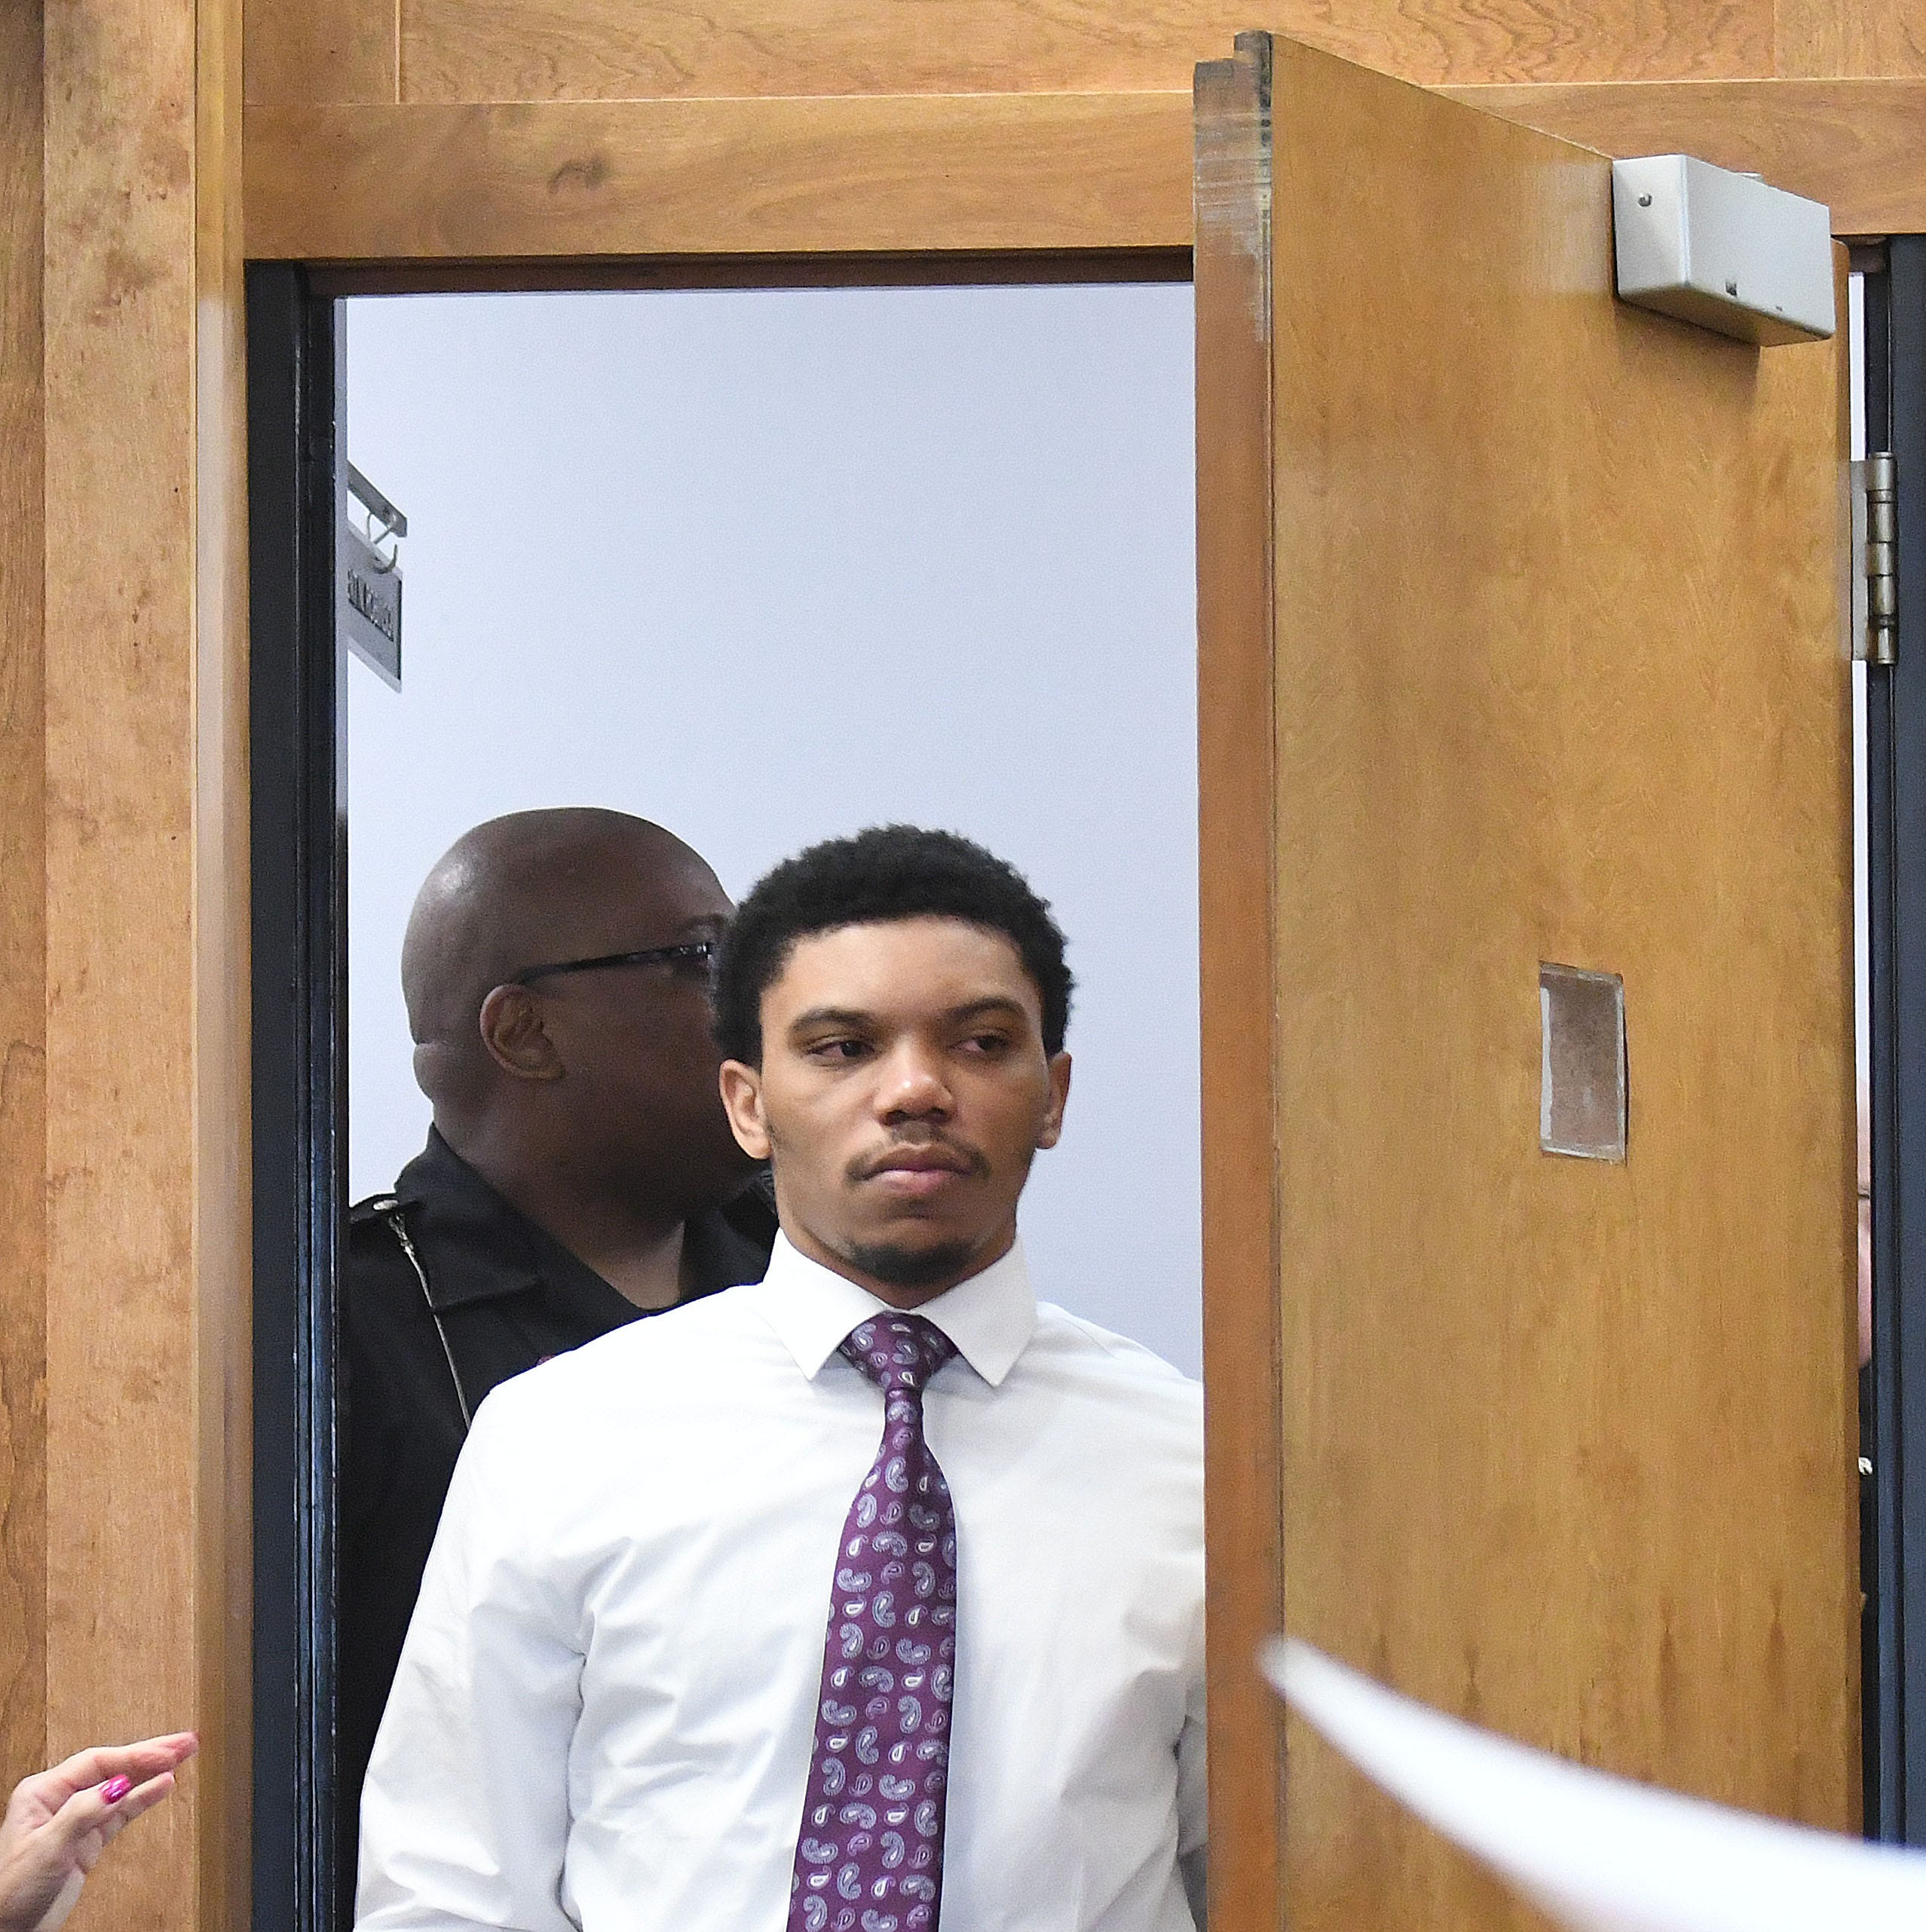 Key witness takes stand on third day of murder trial